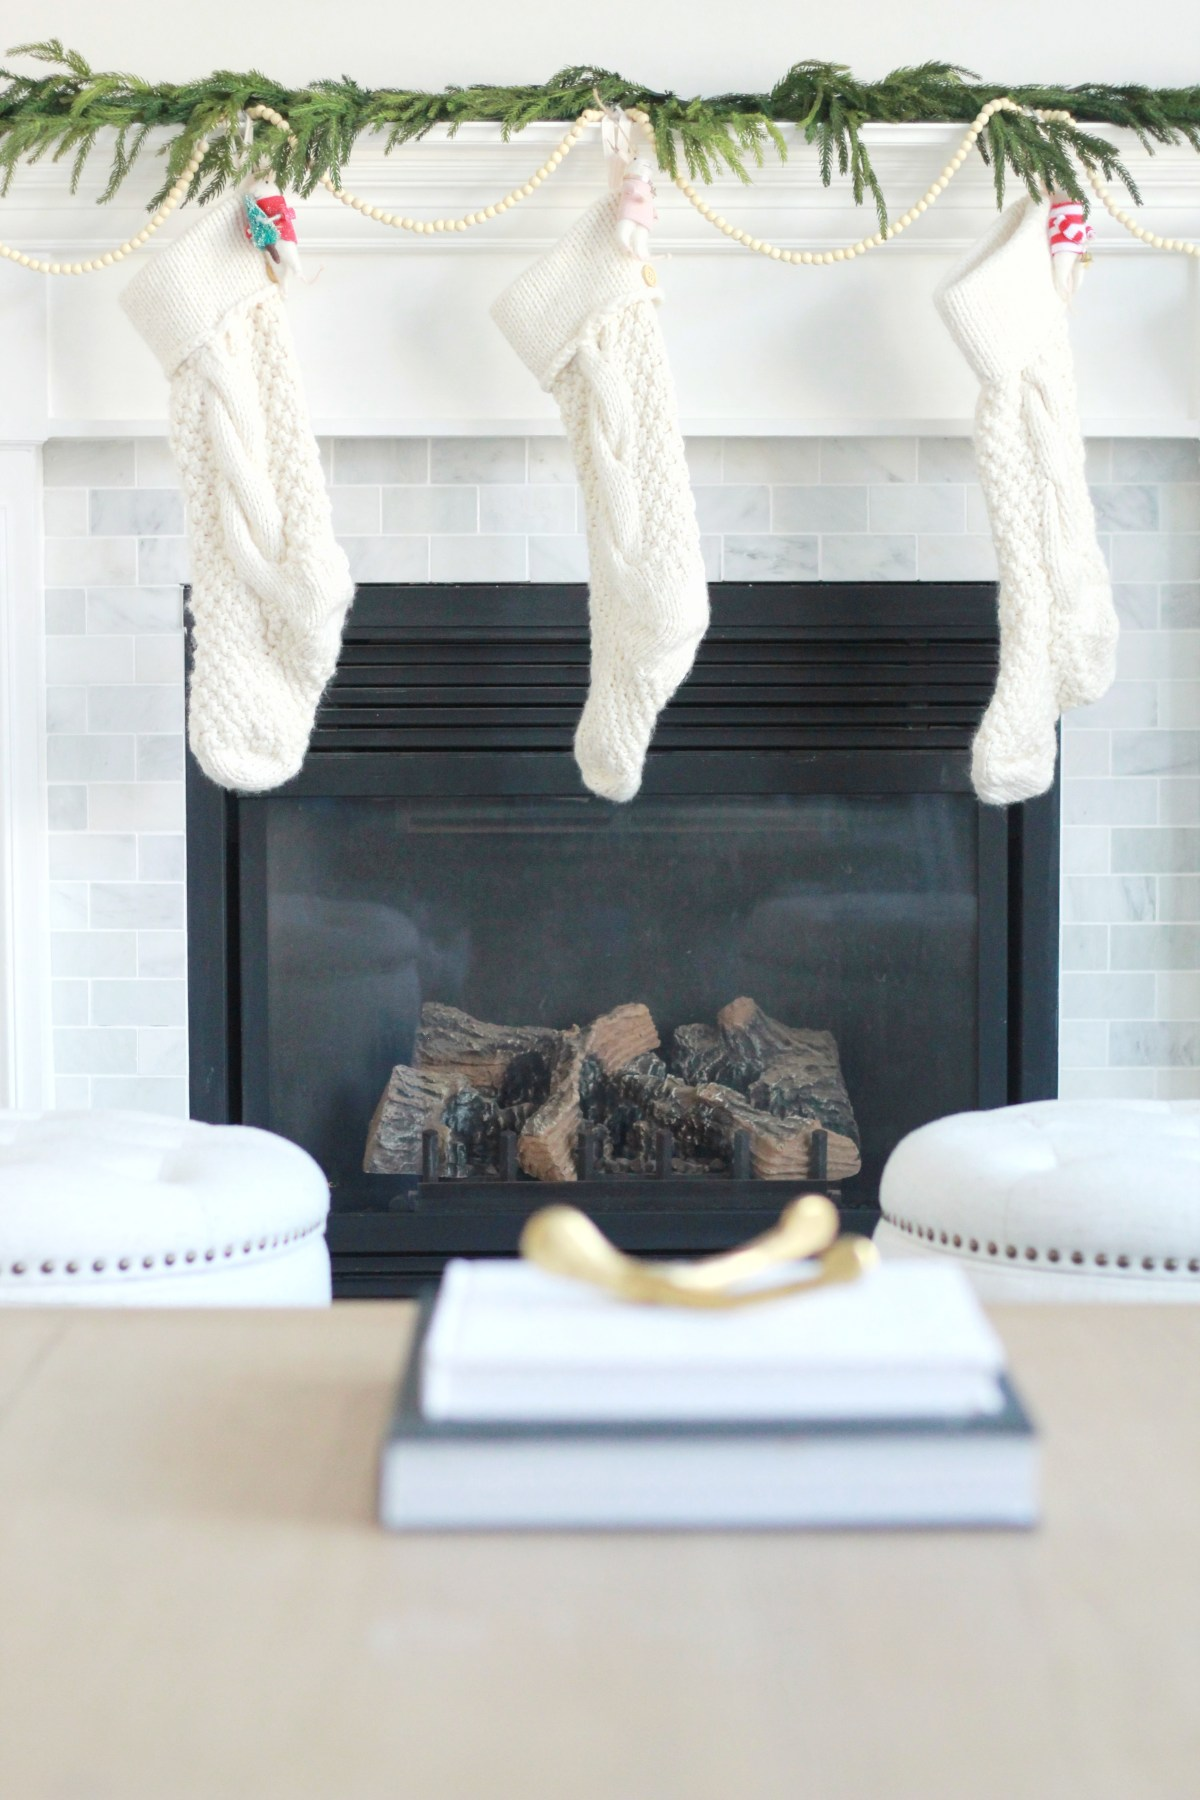 Our Fireplace got a marble makeover!